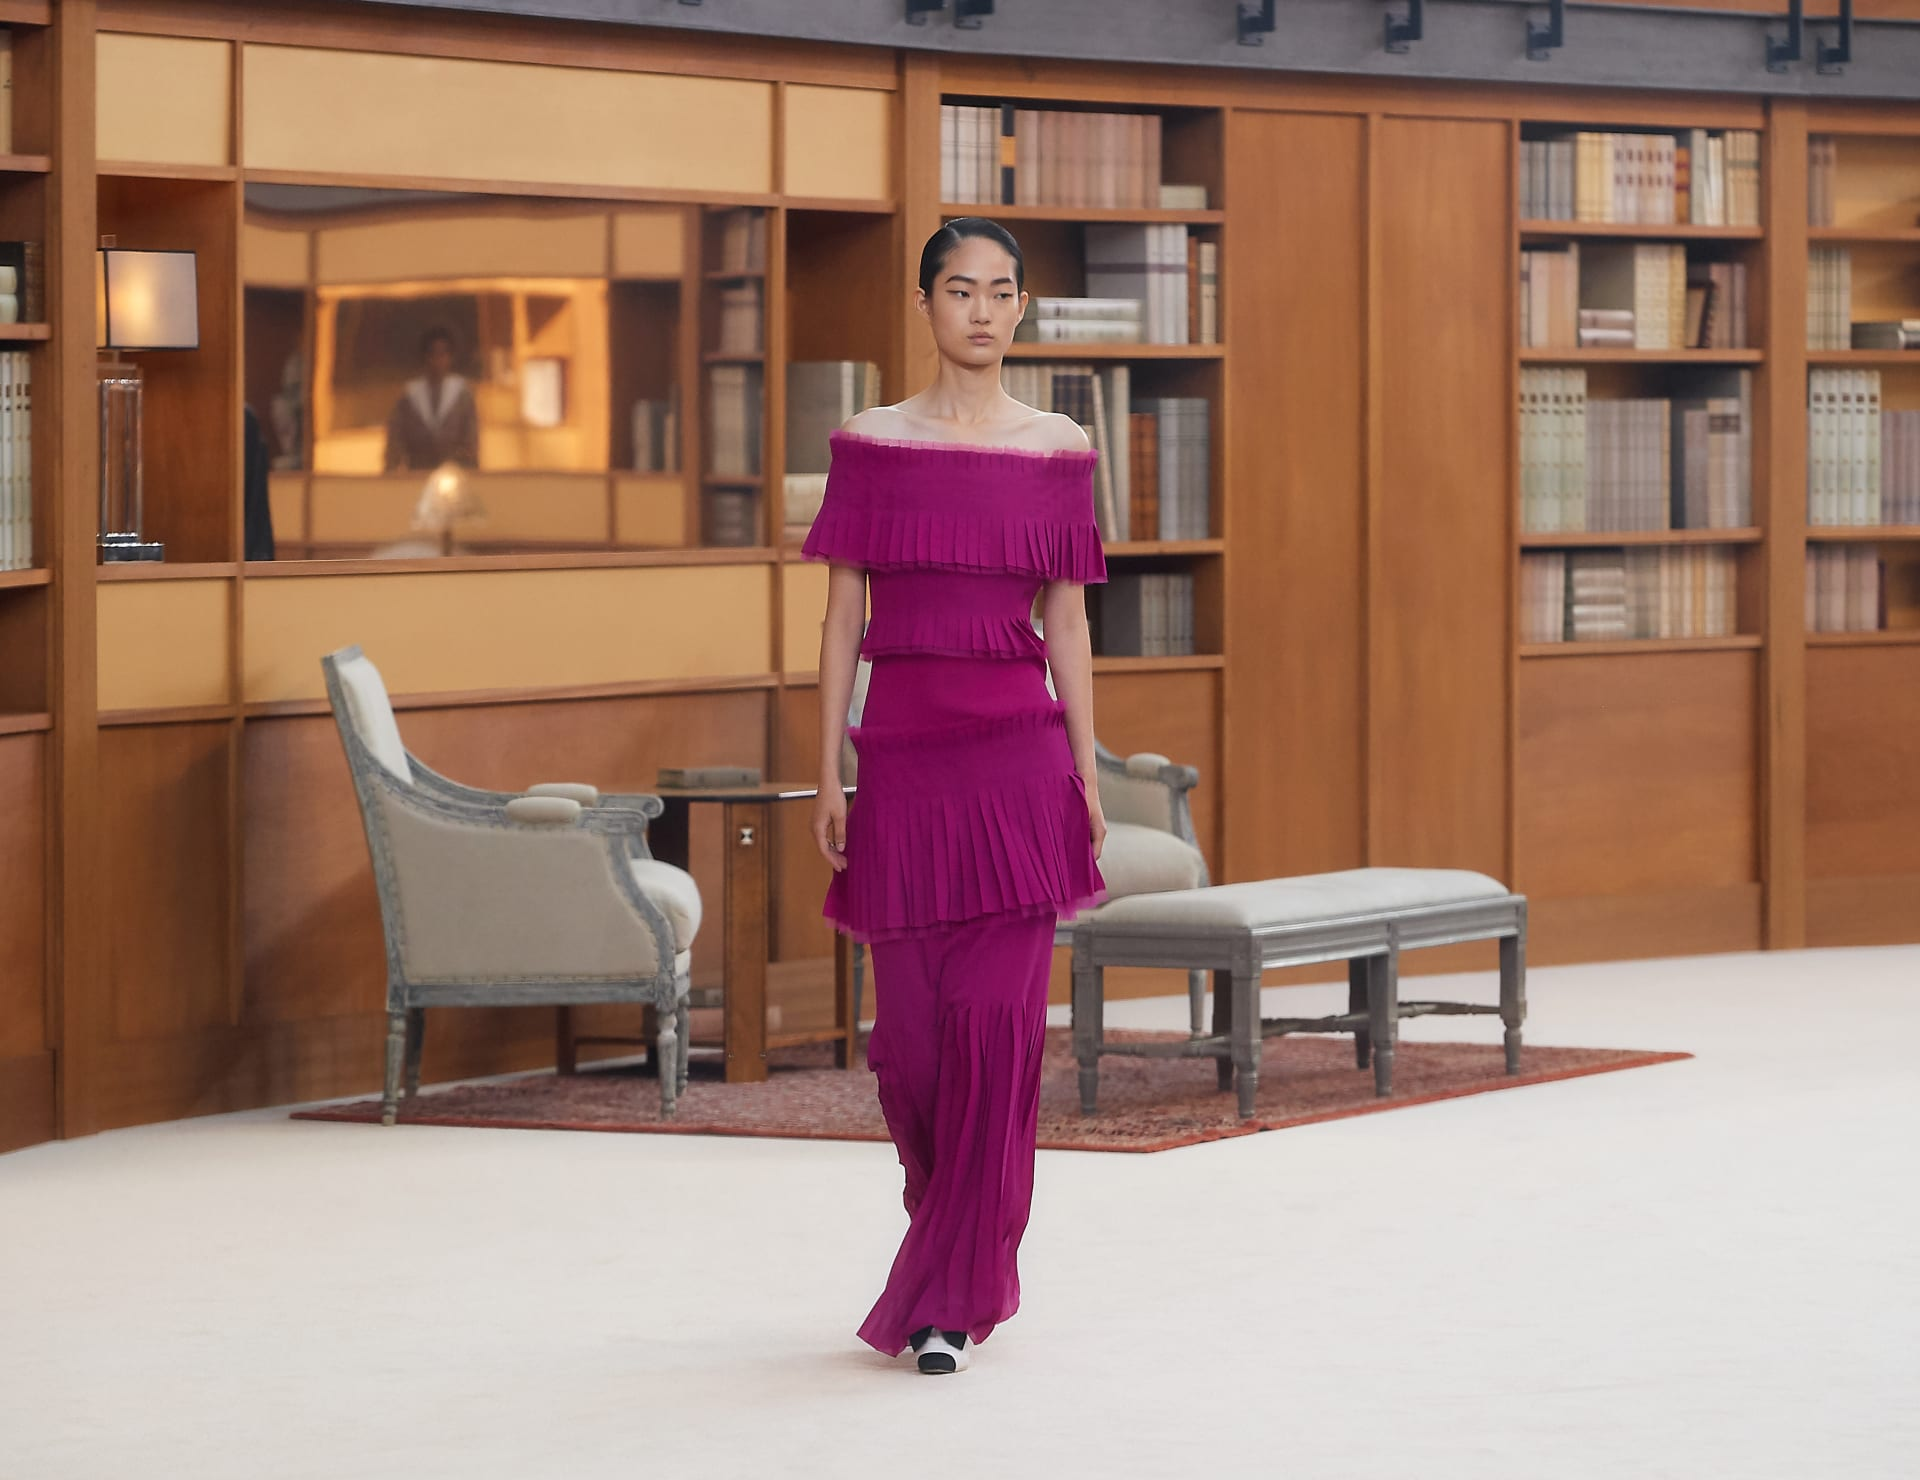 View 1 - Look 36 - Fall-Winter 2019/20 Haute-Couture - see full sized version